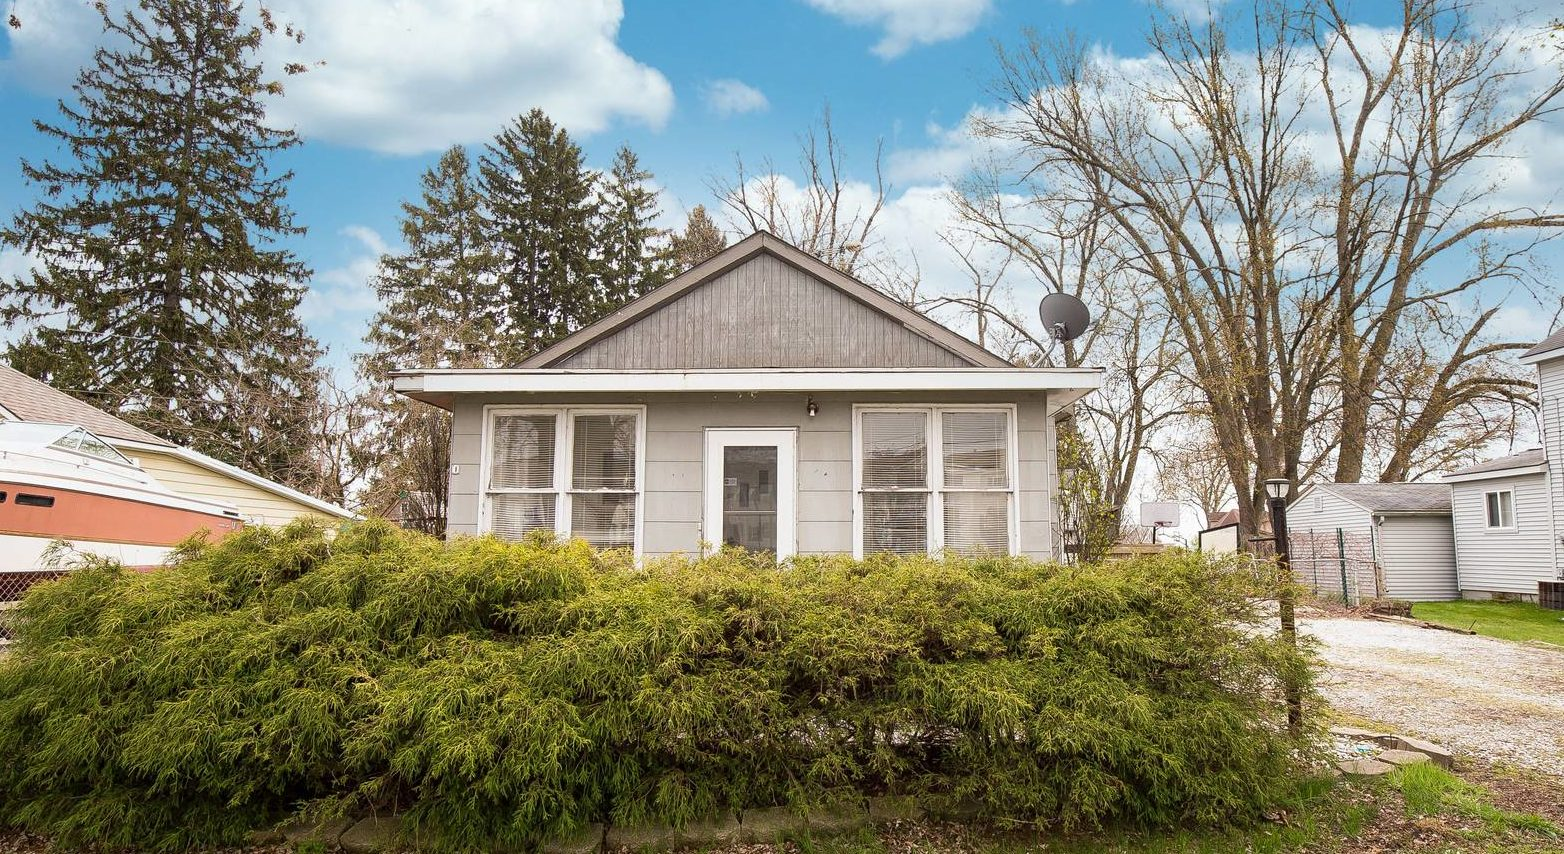 SALE PENDING IN 5 DAYS! – 50760 Jefferson Ave New Baltimore